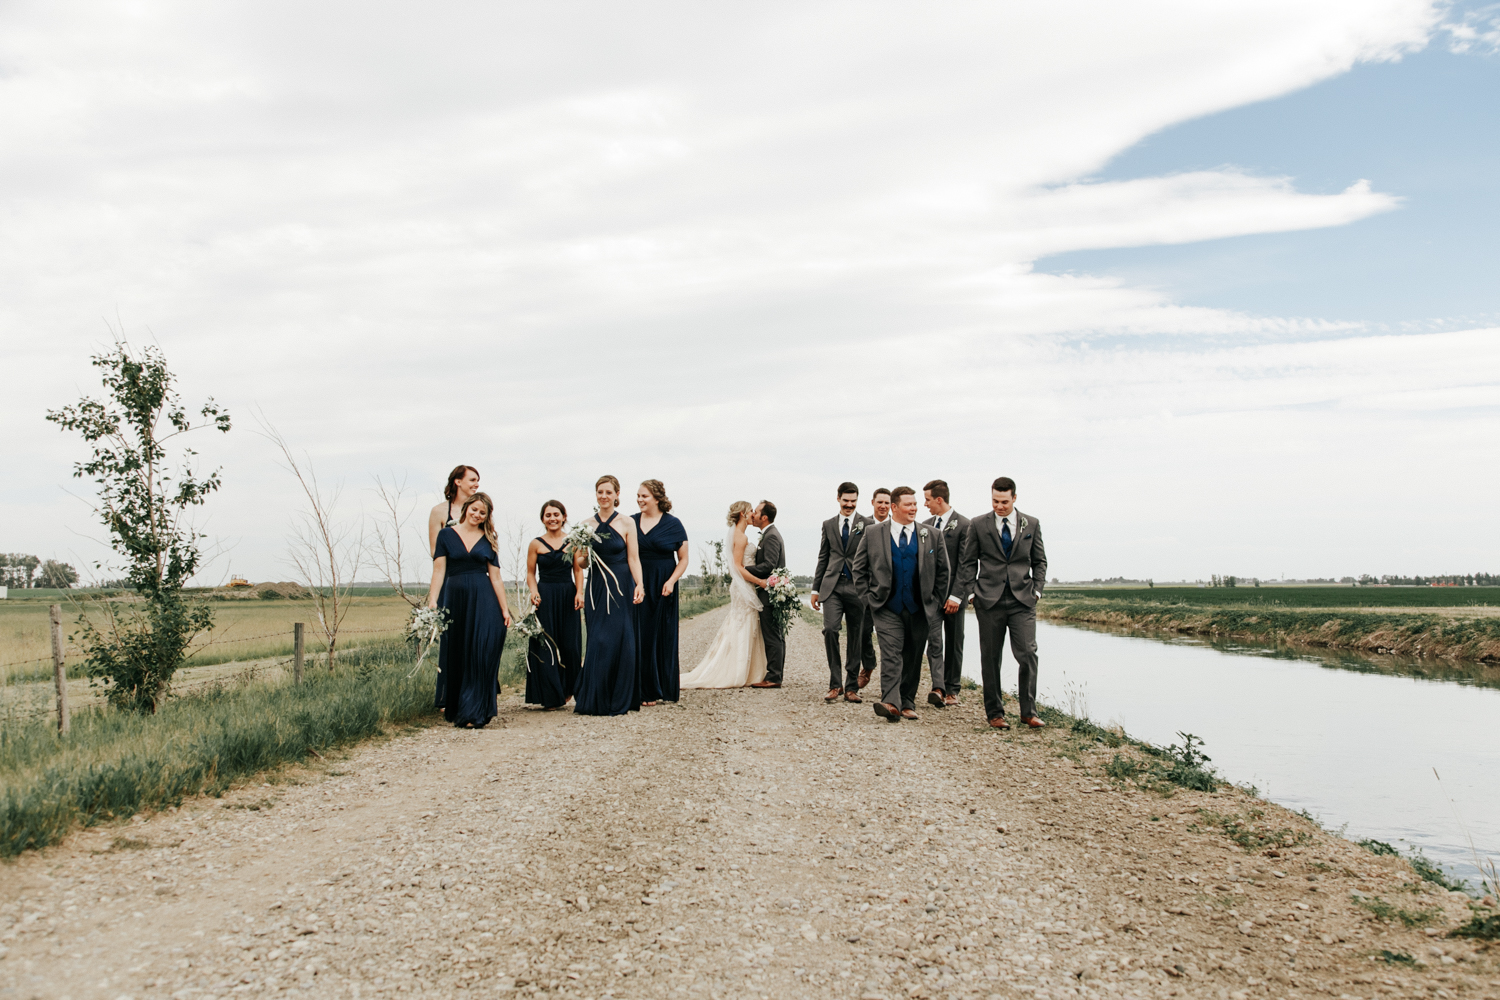 lethbridge-photographer-readymade-community-centre-wedding-coaldale-bailey-joel-picture-image-photo-42.jpg